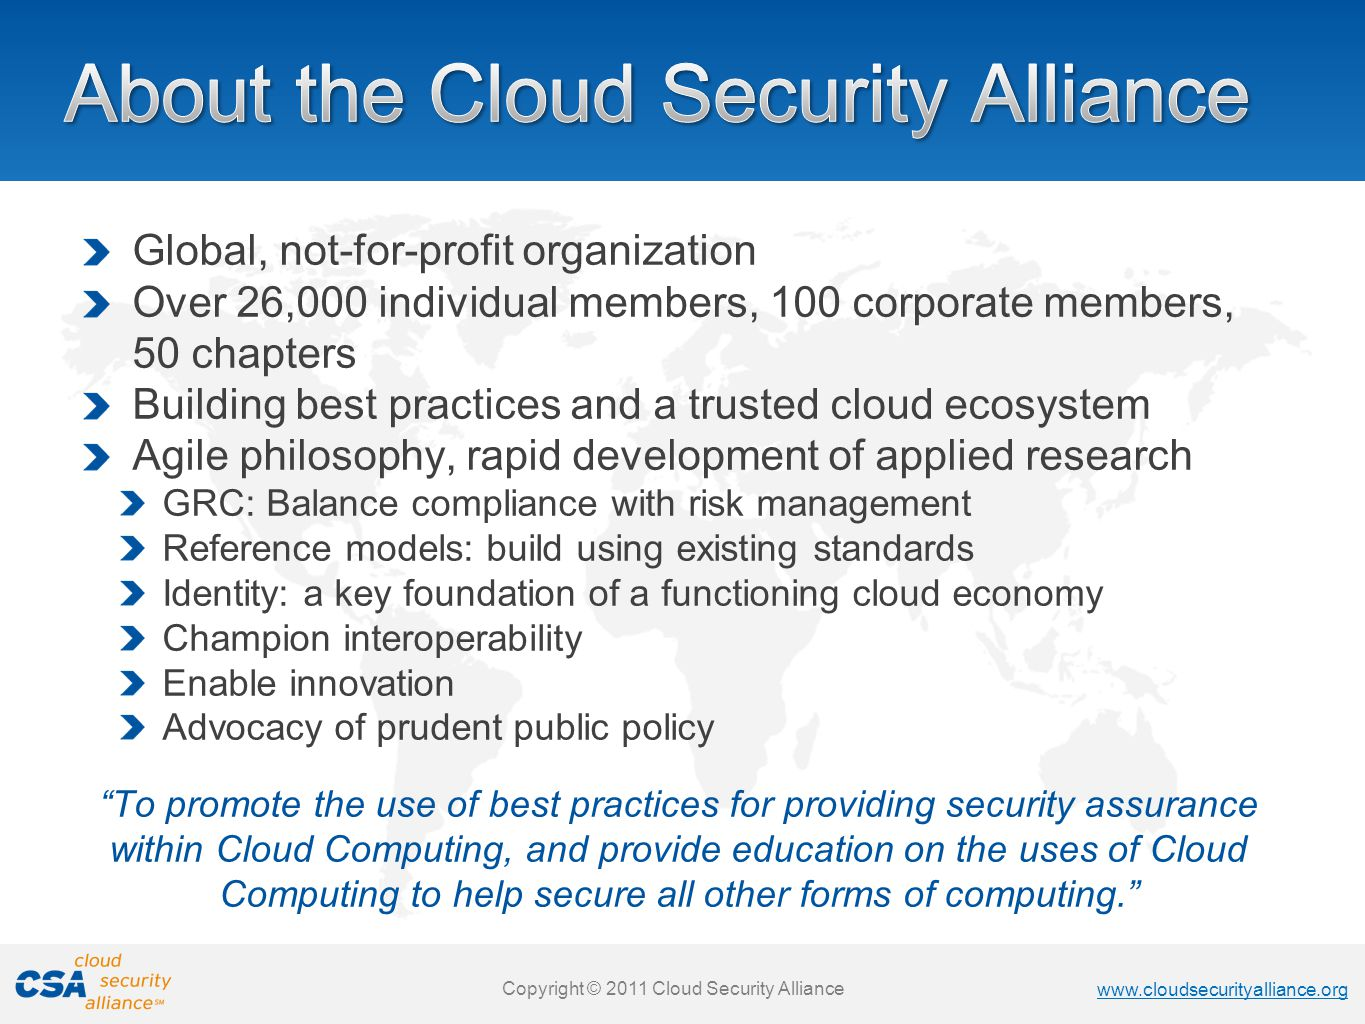 www.cloudsecurityalliance.org Copyright © 2011 Cloud Security Alliance www.cloudsecurityalliance.org Copyright © 2011 Cloud Security Alliance www.cloudsecurityalliance.org Copyright © 2011 Cloud Security Alliance www.cloudsecurityalliance.org Copyright © 2011 Cloud Security Alliance Global, not-for-profit organization Over 26,000 individual members, 100 corporate members, 50 chapters Building best practices and a trusted cloud ecosystem Agile philosophy, rapid development of applied research GRC: Balance compliance with risk management Reference models: build using existing standards Identity: a key foundation of a functioning cloud economy Champion interoperability Enable innovation Advocacy of prudent public policy To promote the use of best practices for providing security assurance within Cloud Computing, and provide education on the uses of Cloud Computing to help secure all other forms of computing.